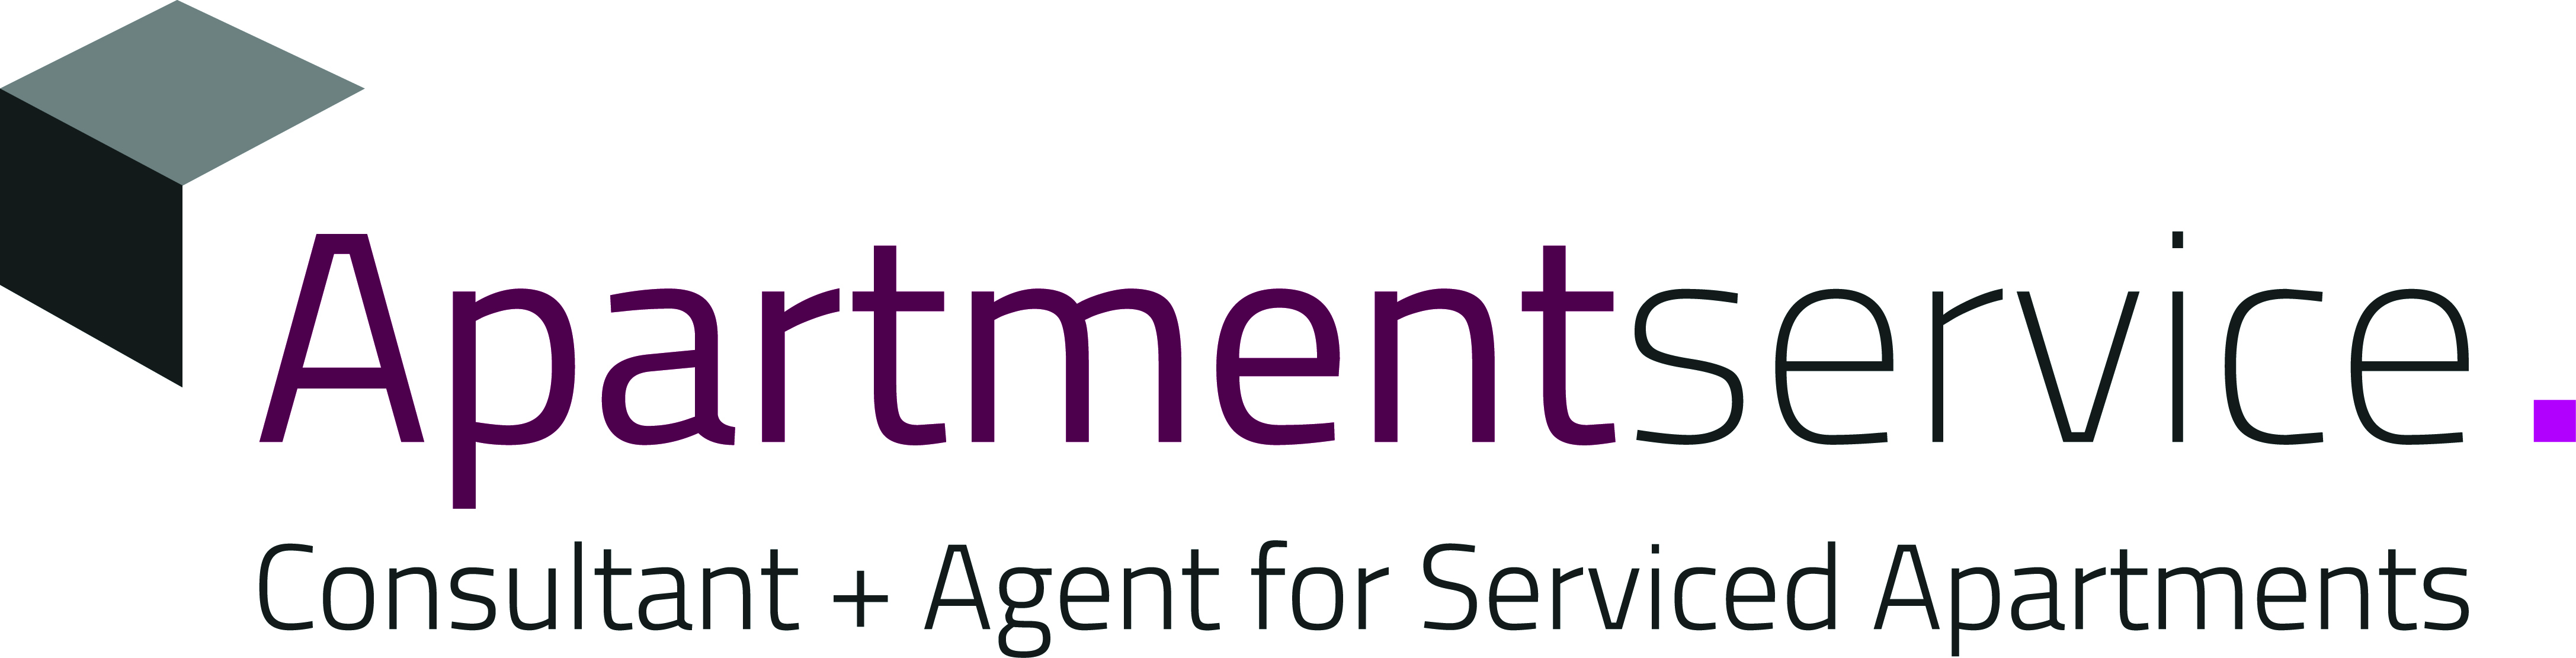 Apartmentservice Consulting Logo